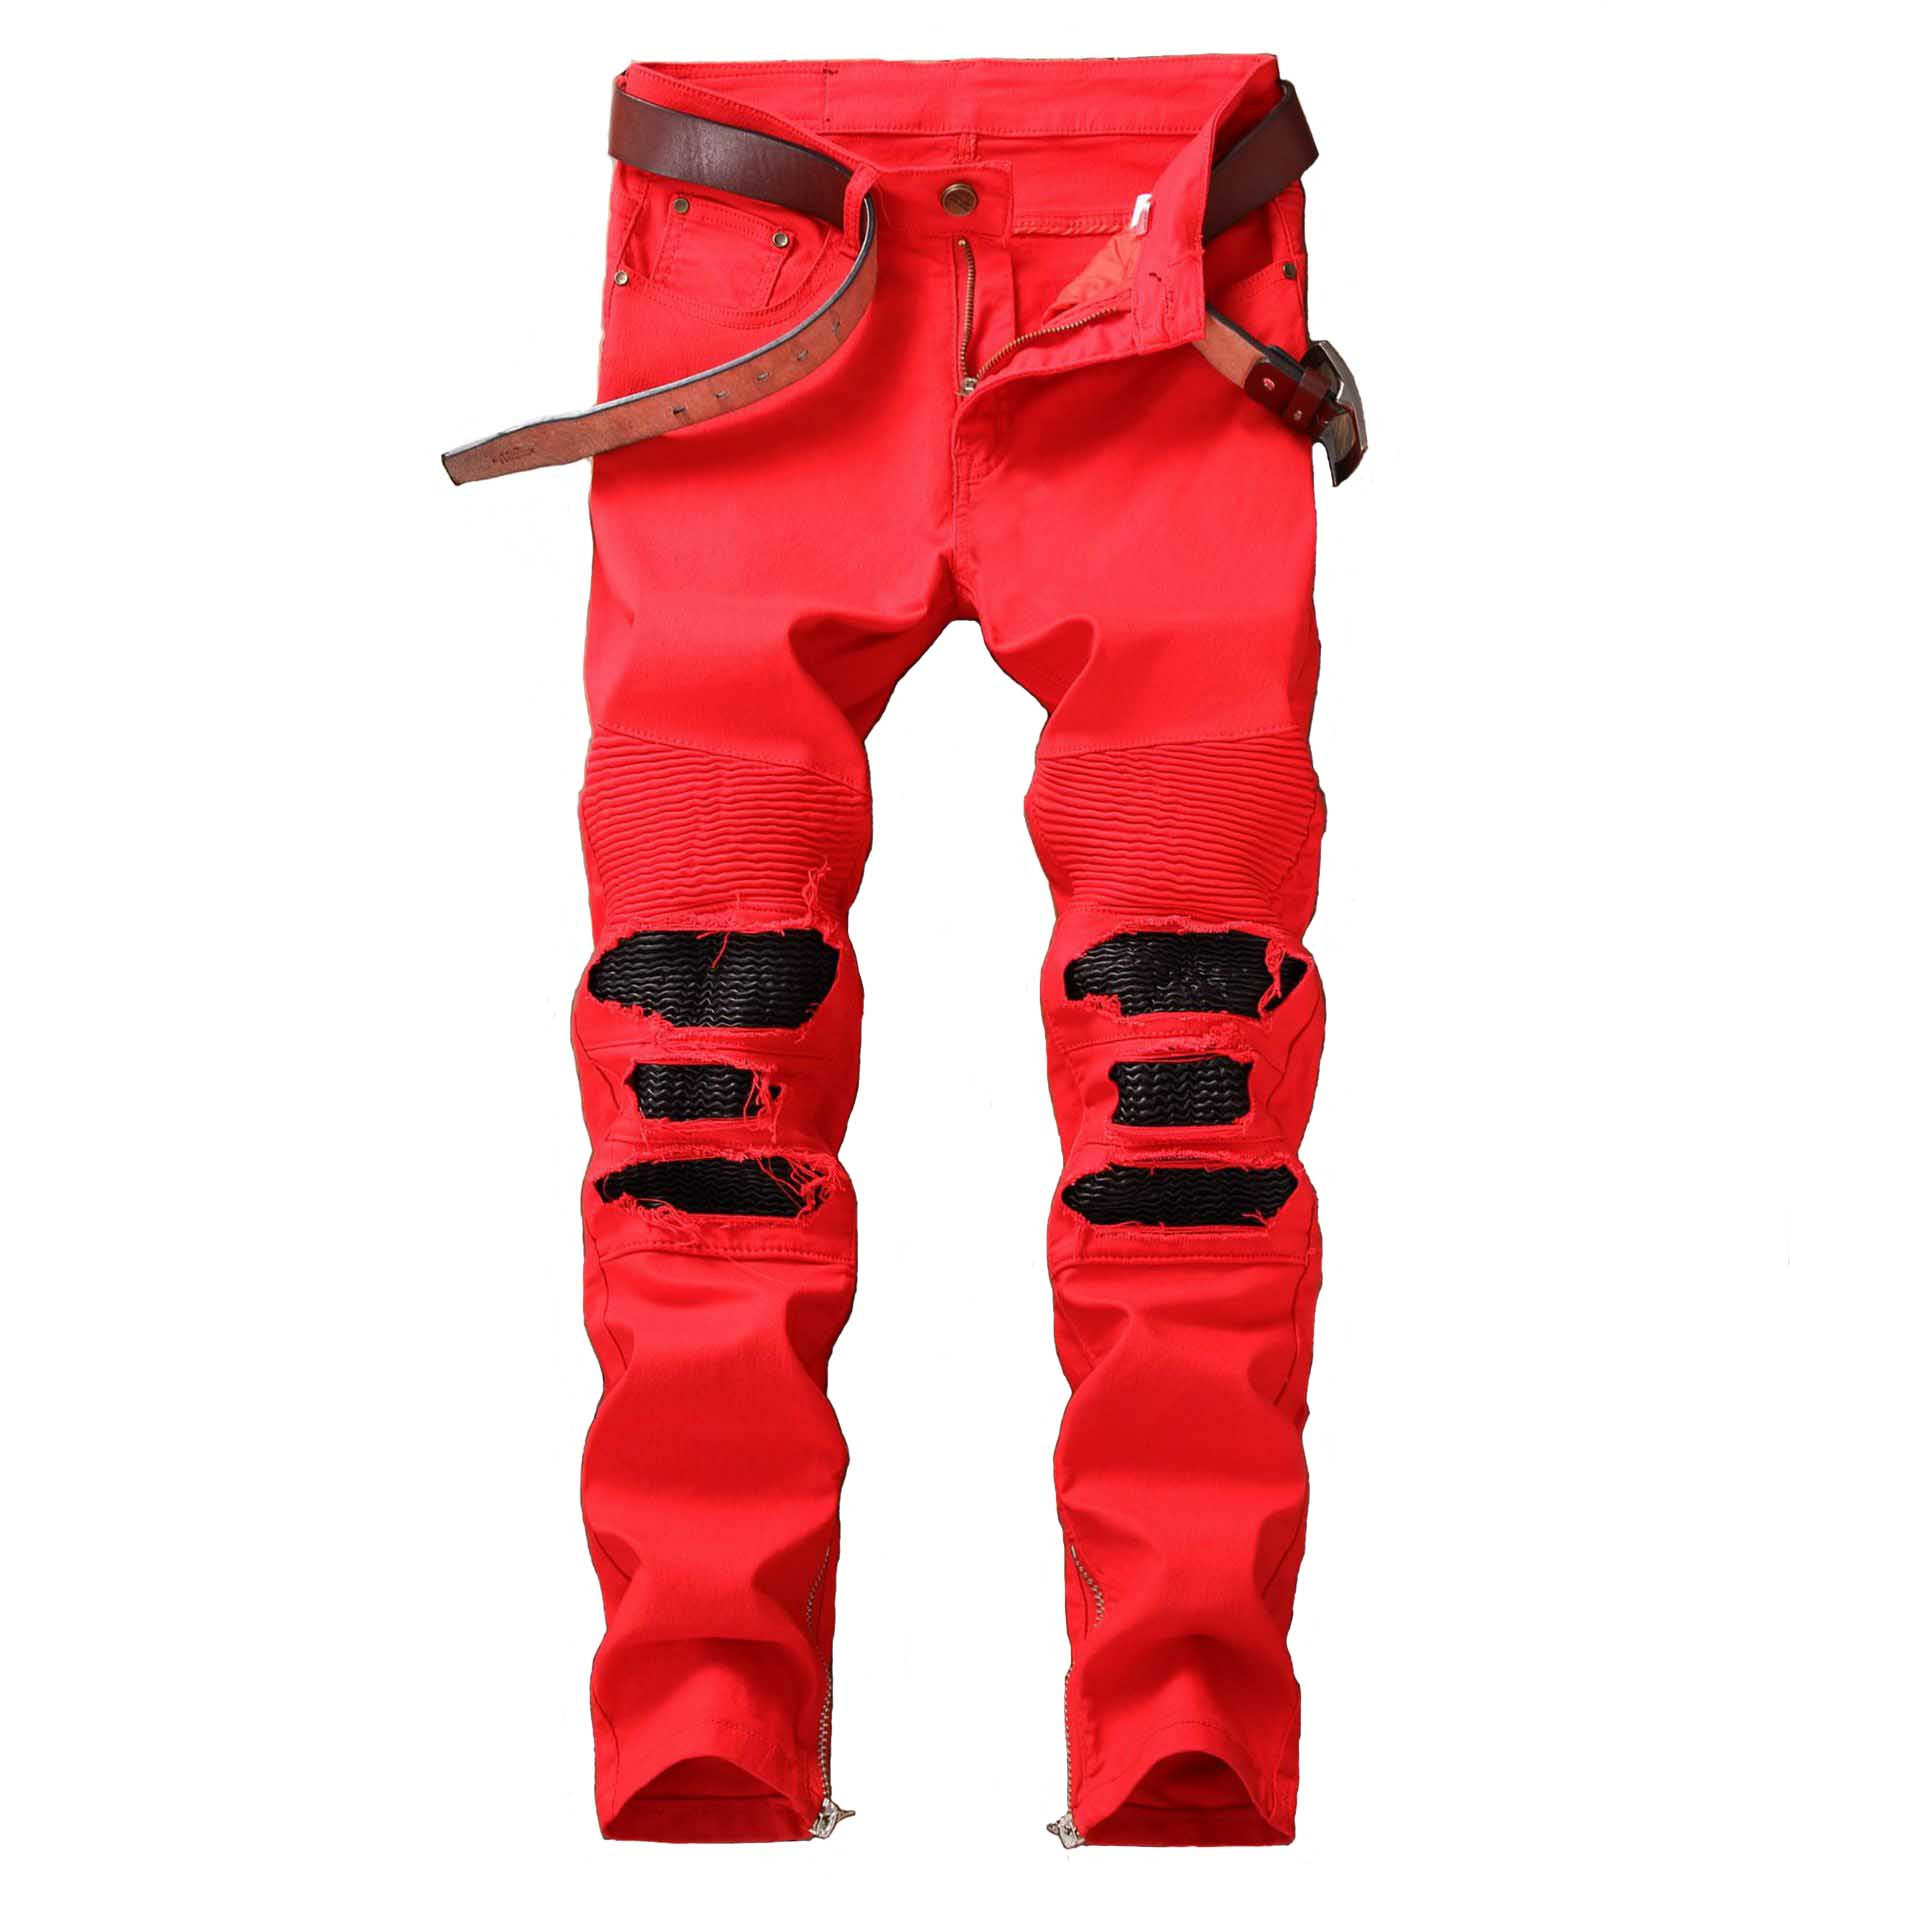 Mcikkny Men's Ripped Pleated Jean Pants Washed Patchwork Motorcycle Denim Trousers Fashion Designer Male Streetwear Pants